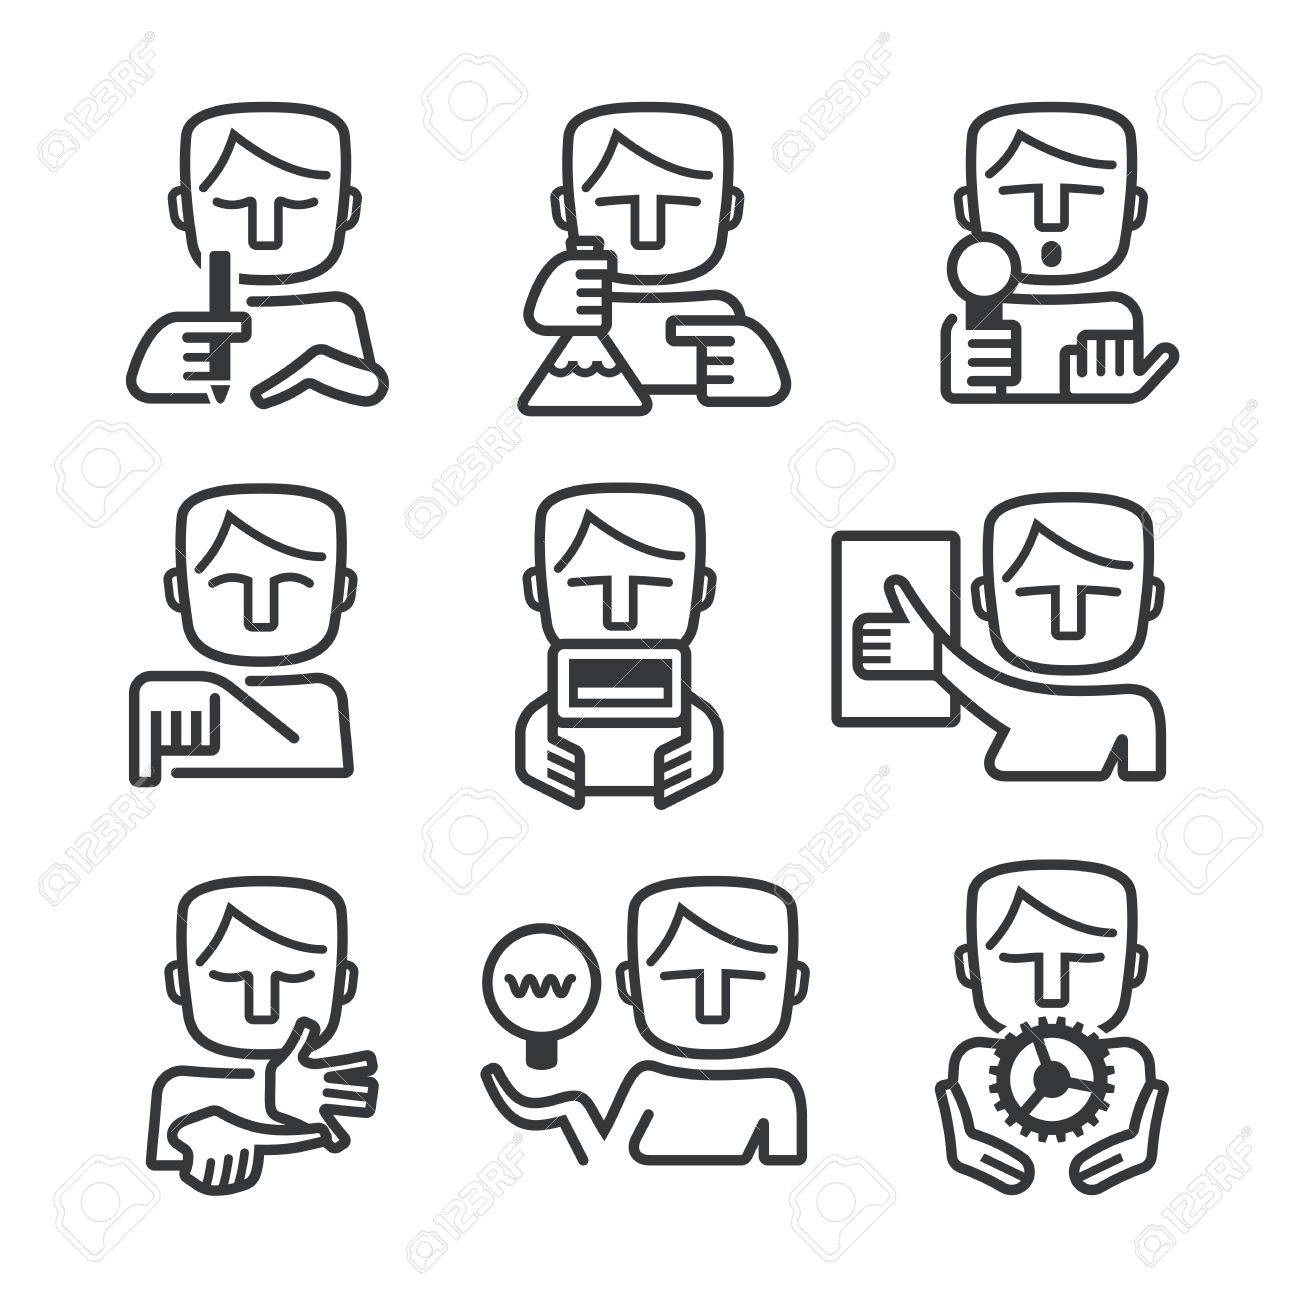 outlined icons of man showing different skills every manager outlined icons of man showing different skills every manager or leader needs stock vector 47797672